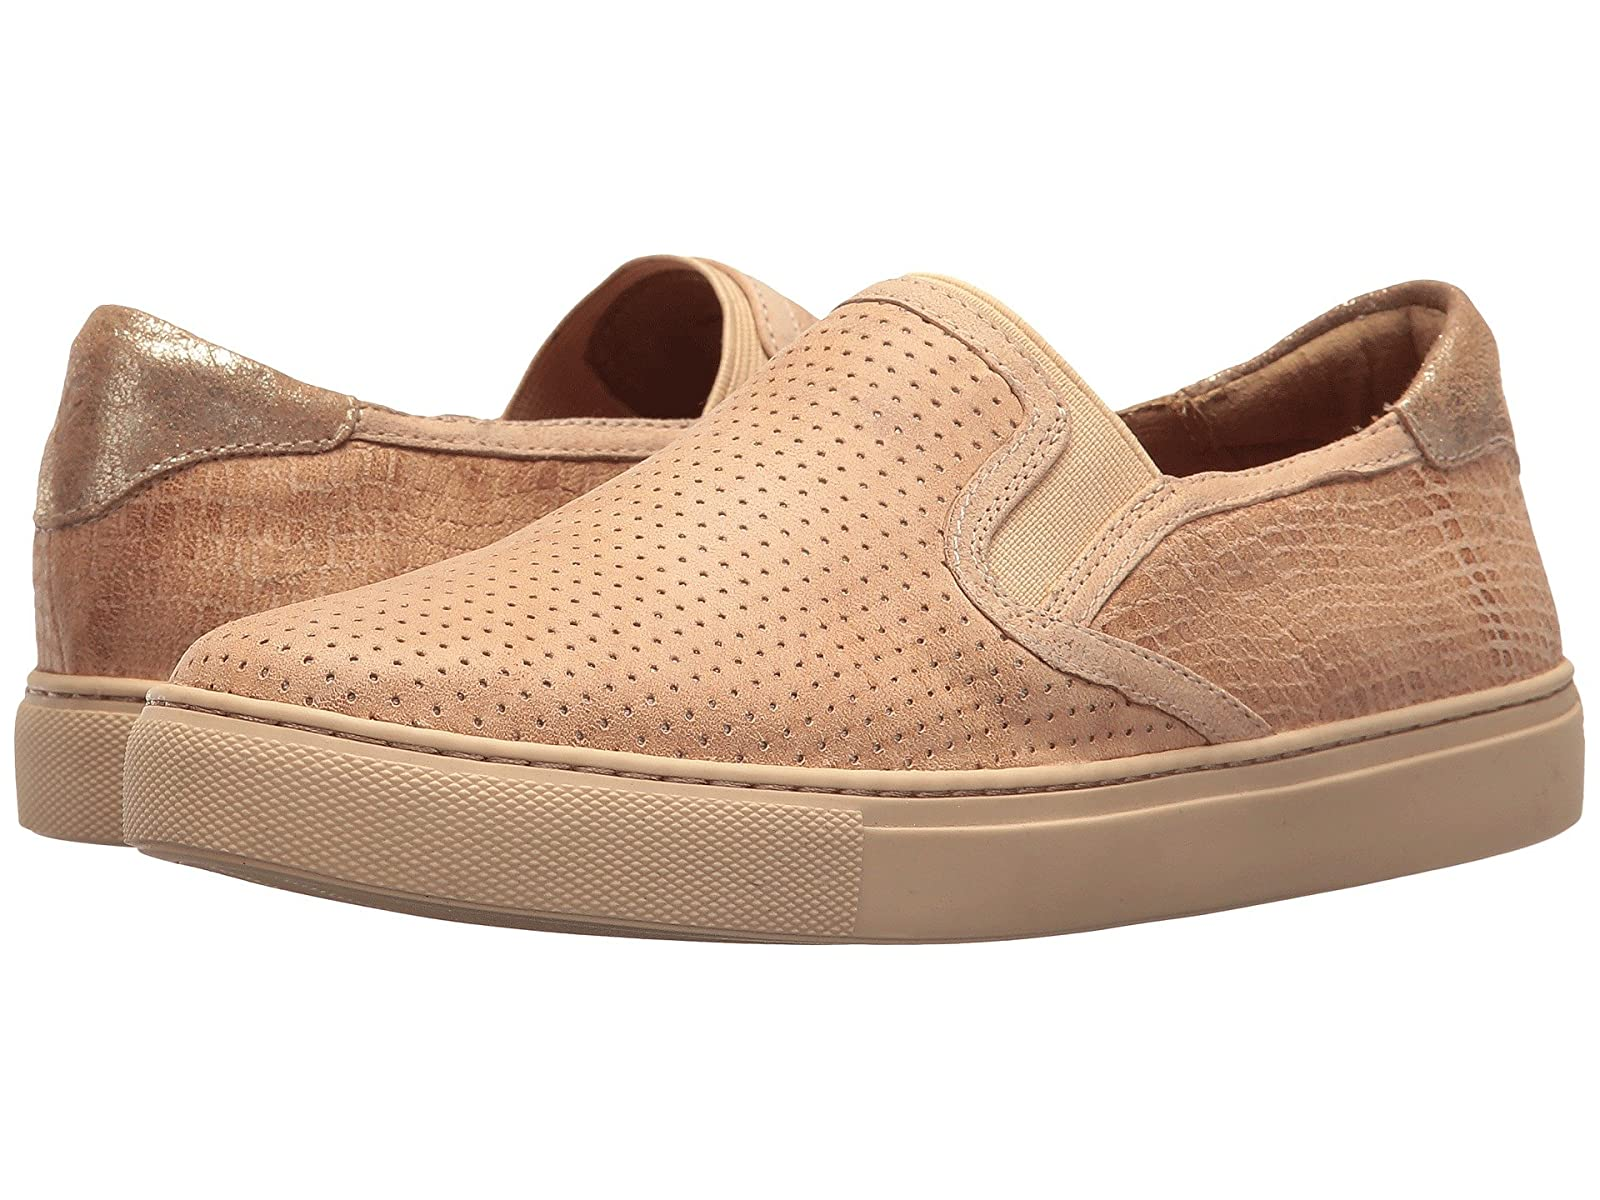 Trask LillianAtmospheric grades have affordable shoes